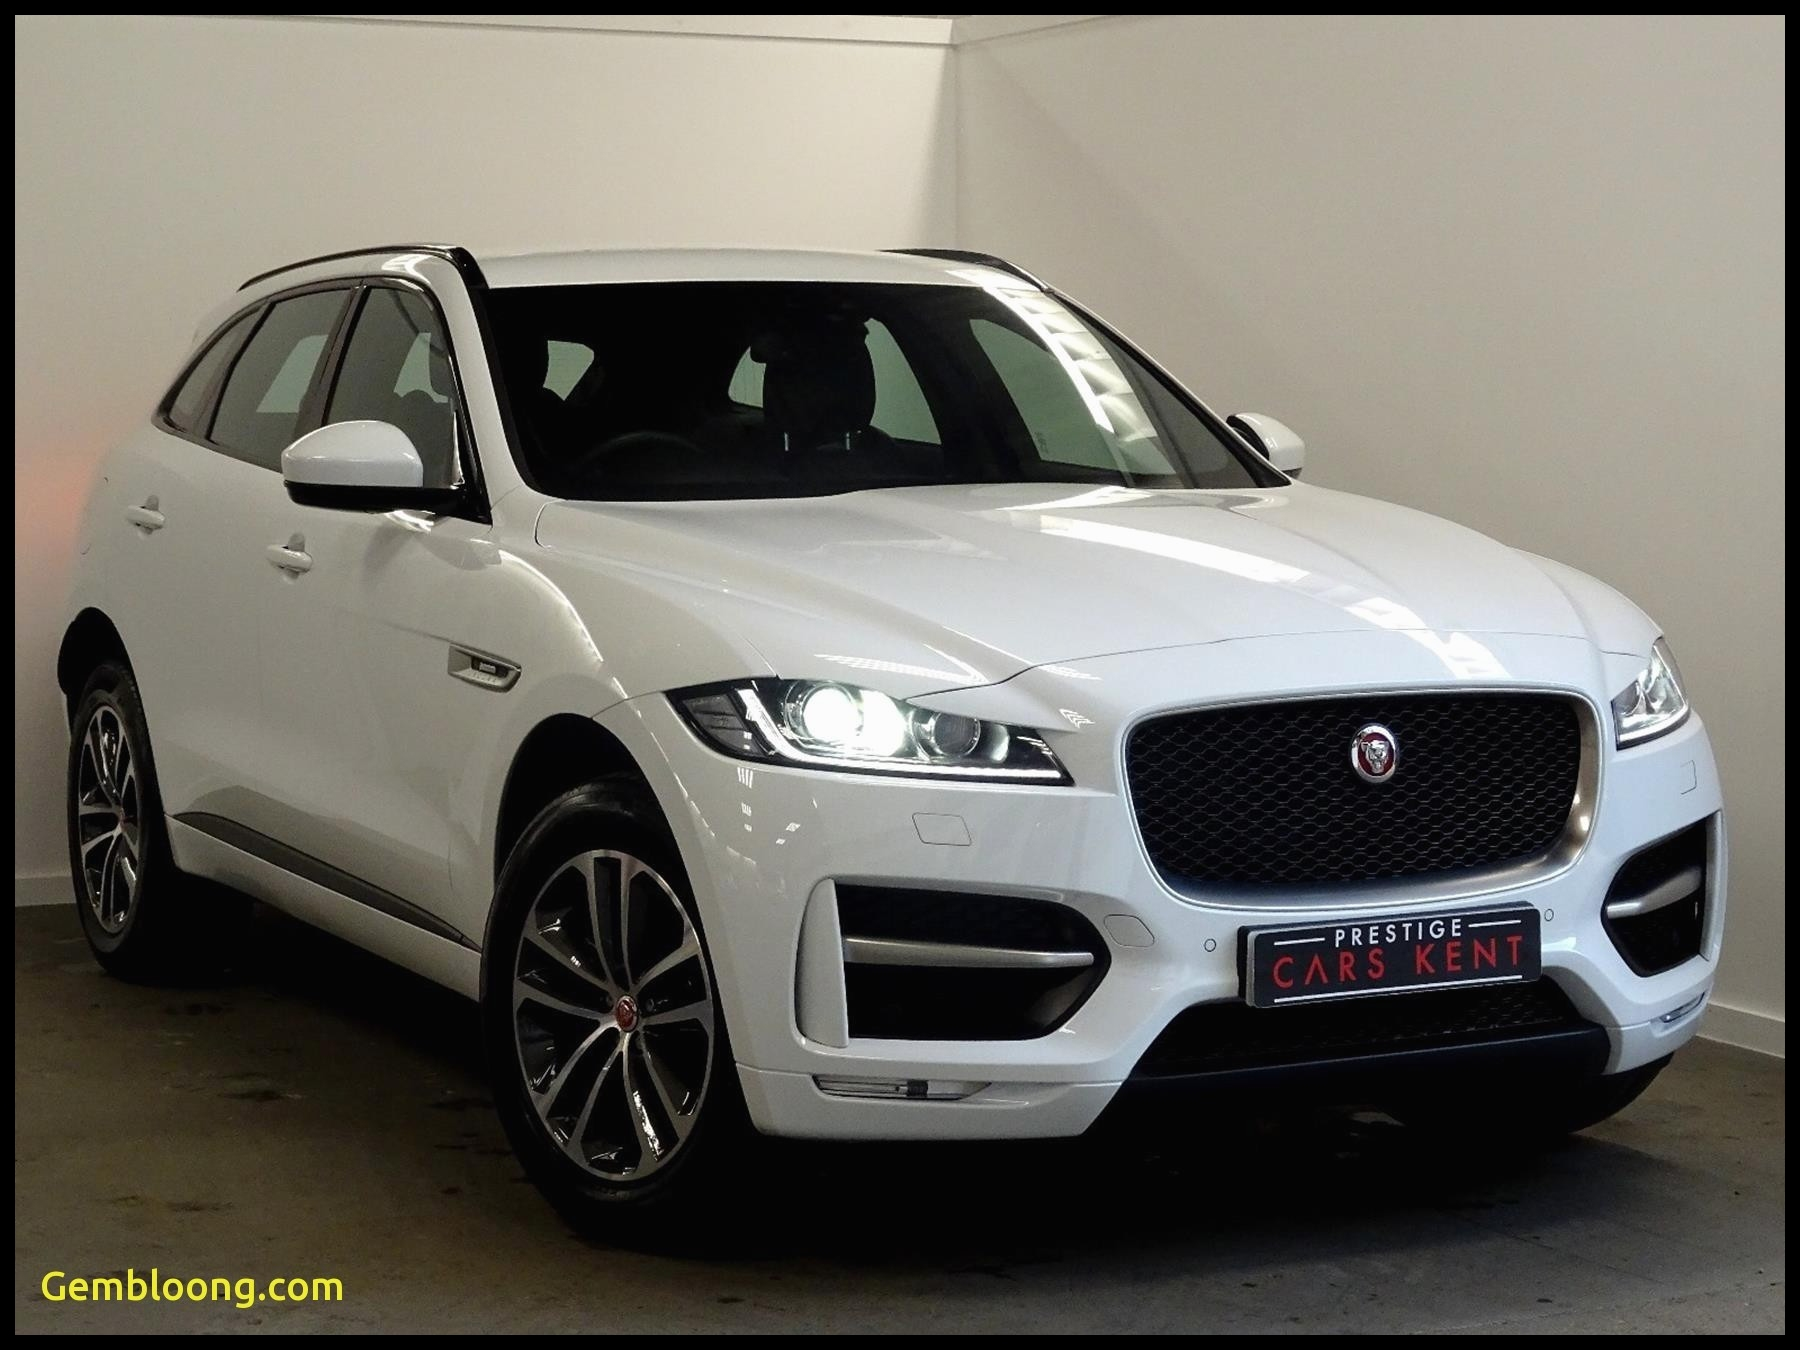 Used Nissan Dealer Near Me Lovely Jaguar for Sale Best Used Cars Near Me Cheap Inspirational